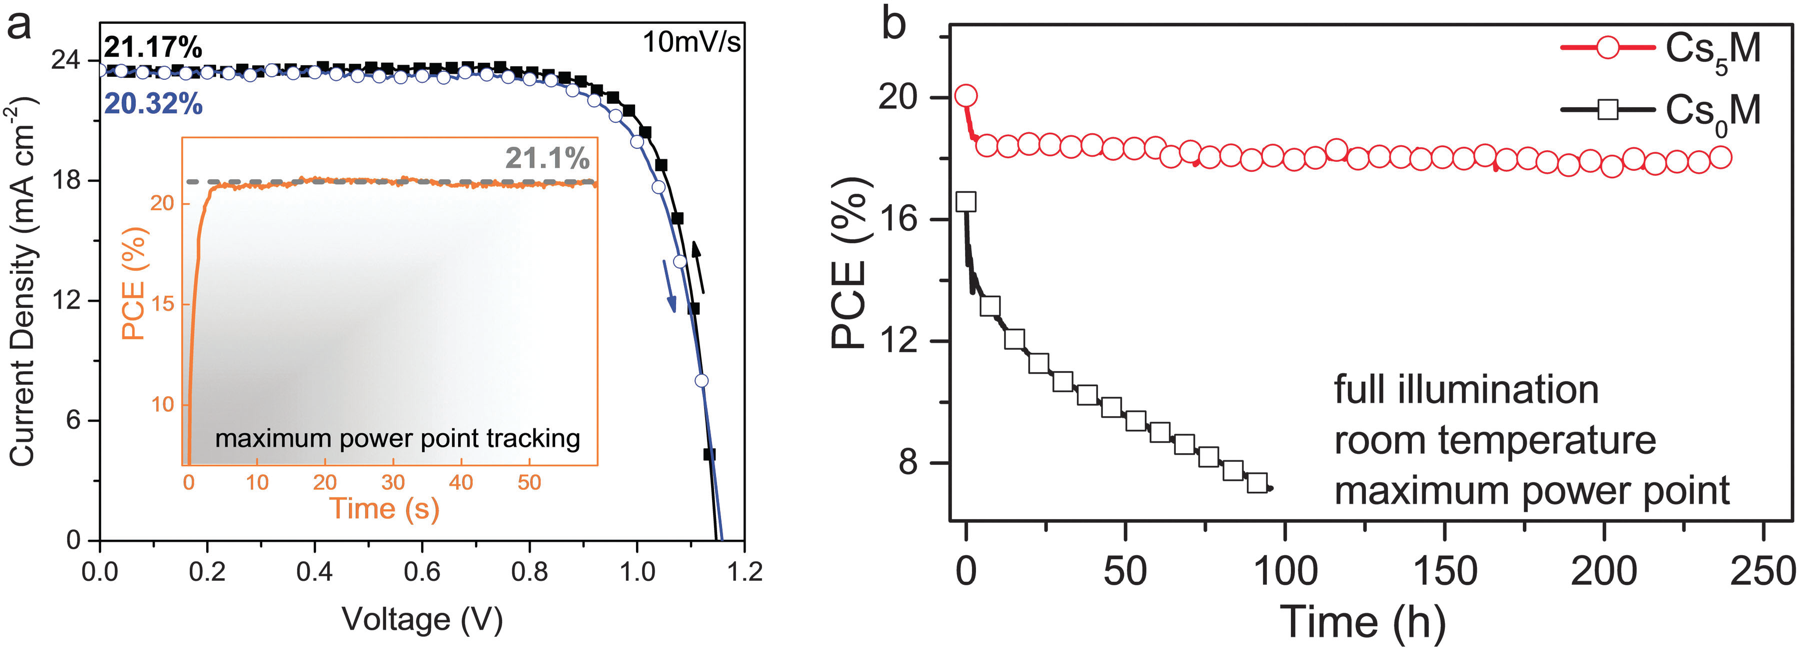 The improvement is obvious – the addition of 5% caesium (red symbols) markedly increases the efficiency and stability of the perovskite cell relative to the variant without caesium (black symbols).